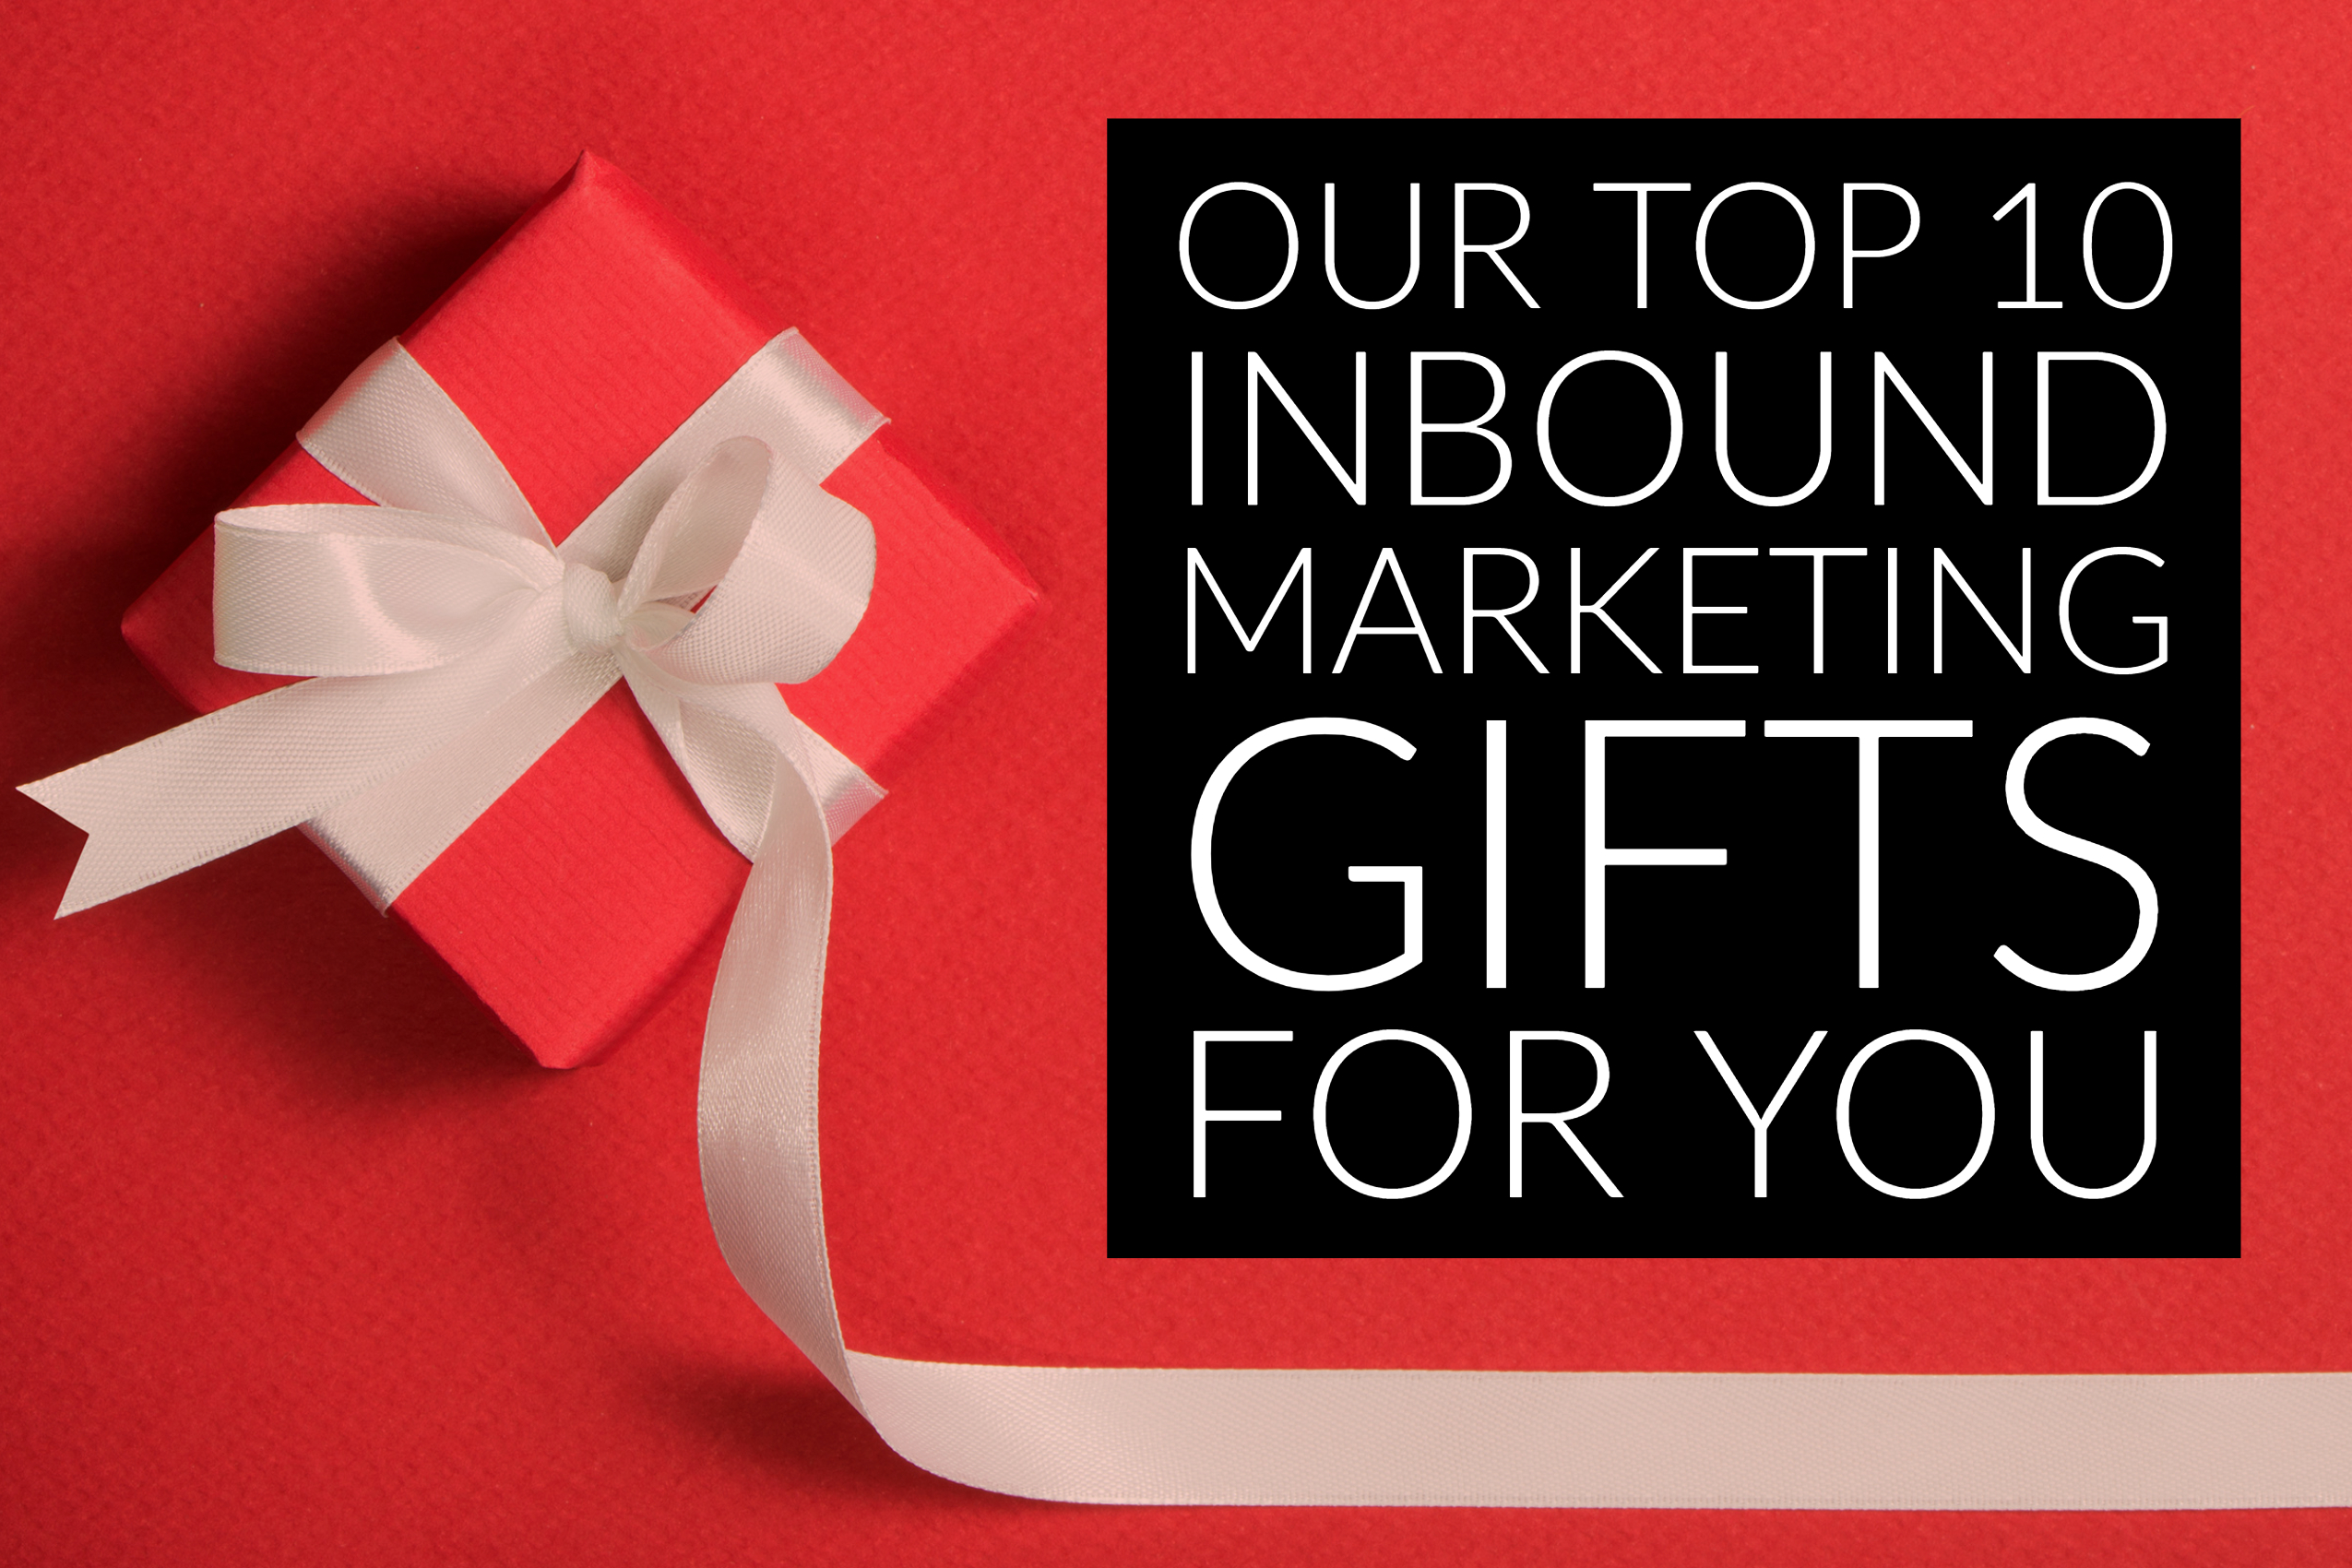 Our Top 10 Inbound Marketing Gifts For You